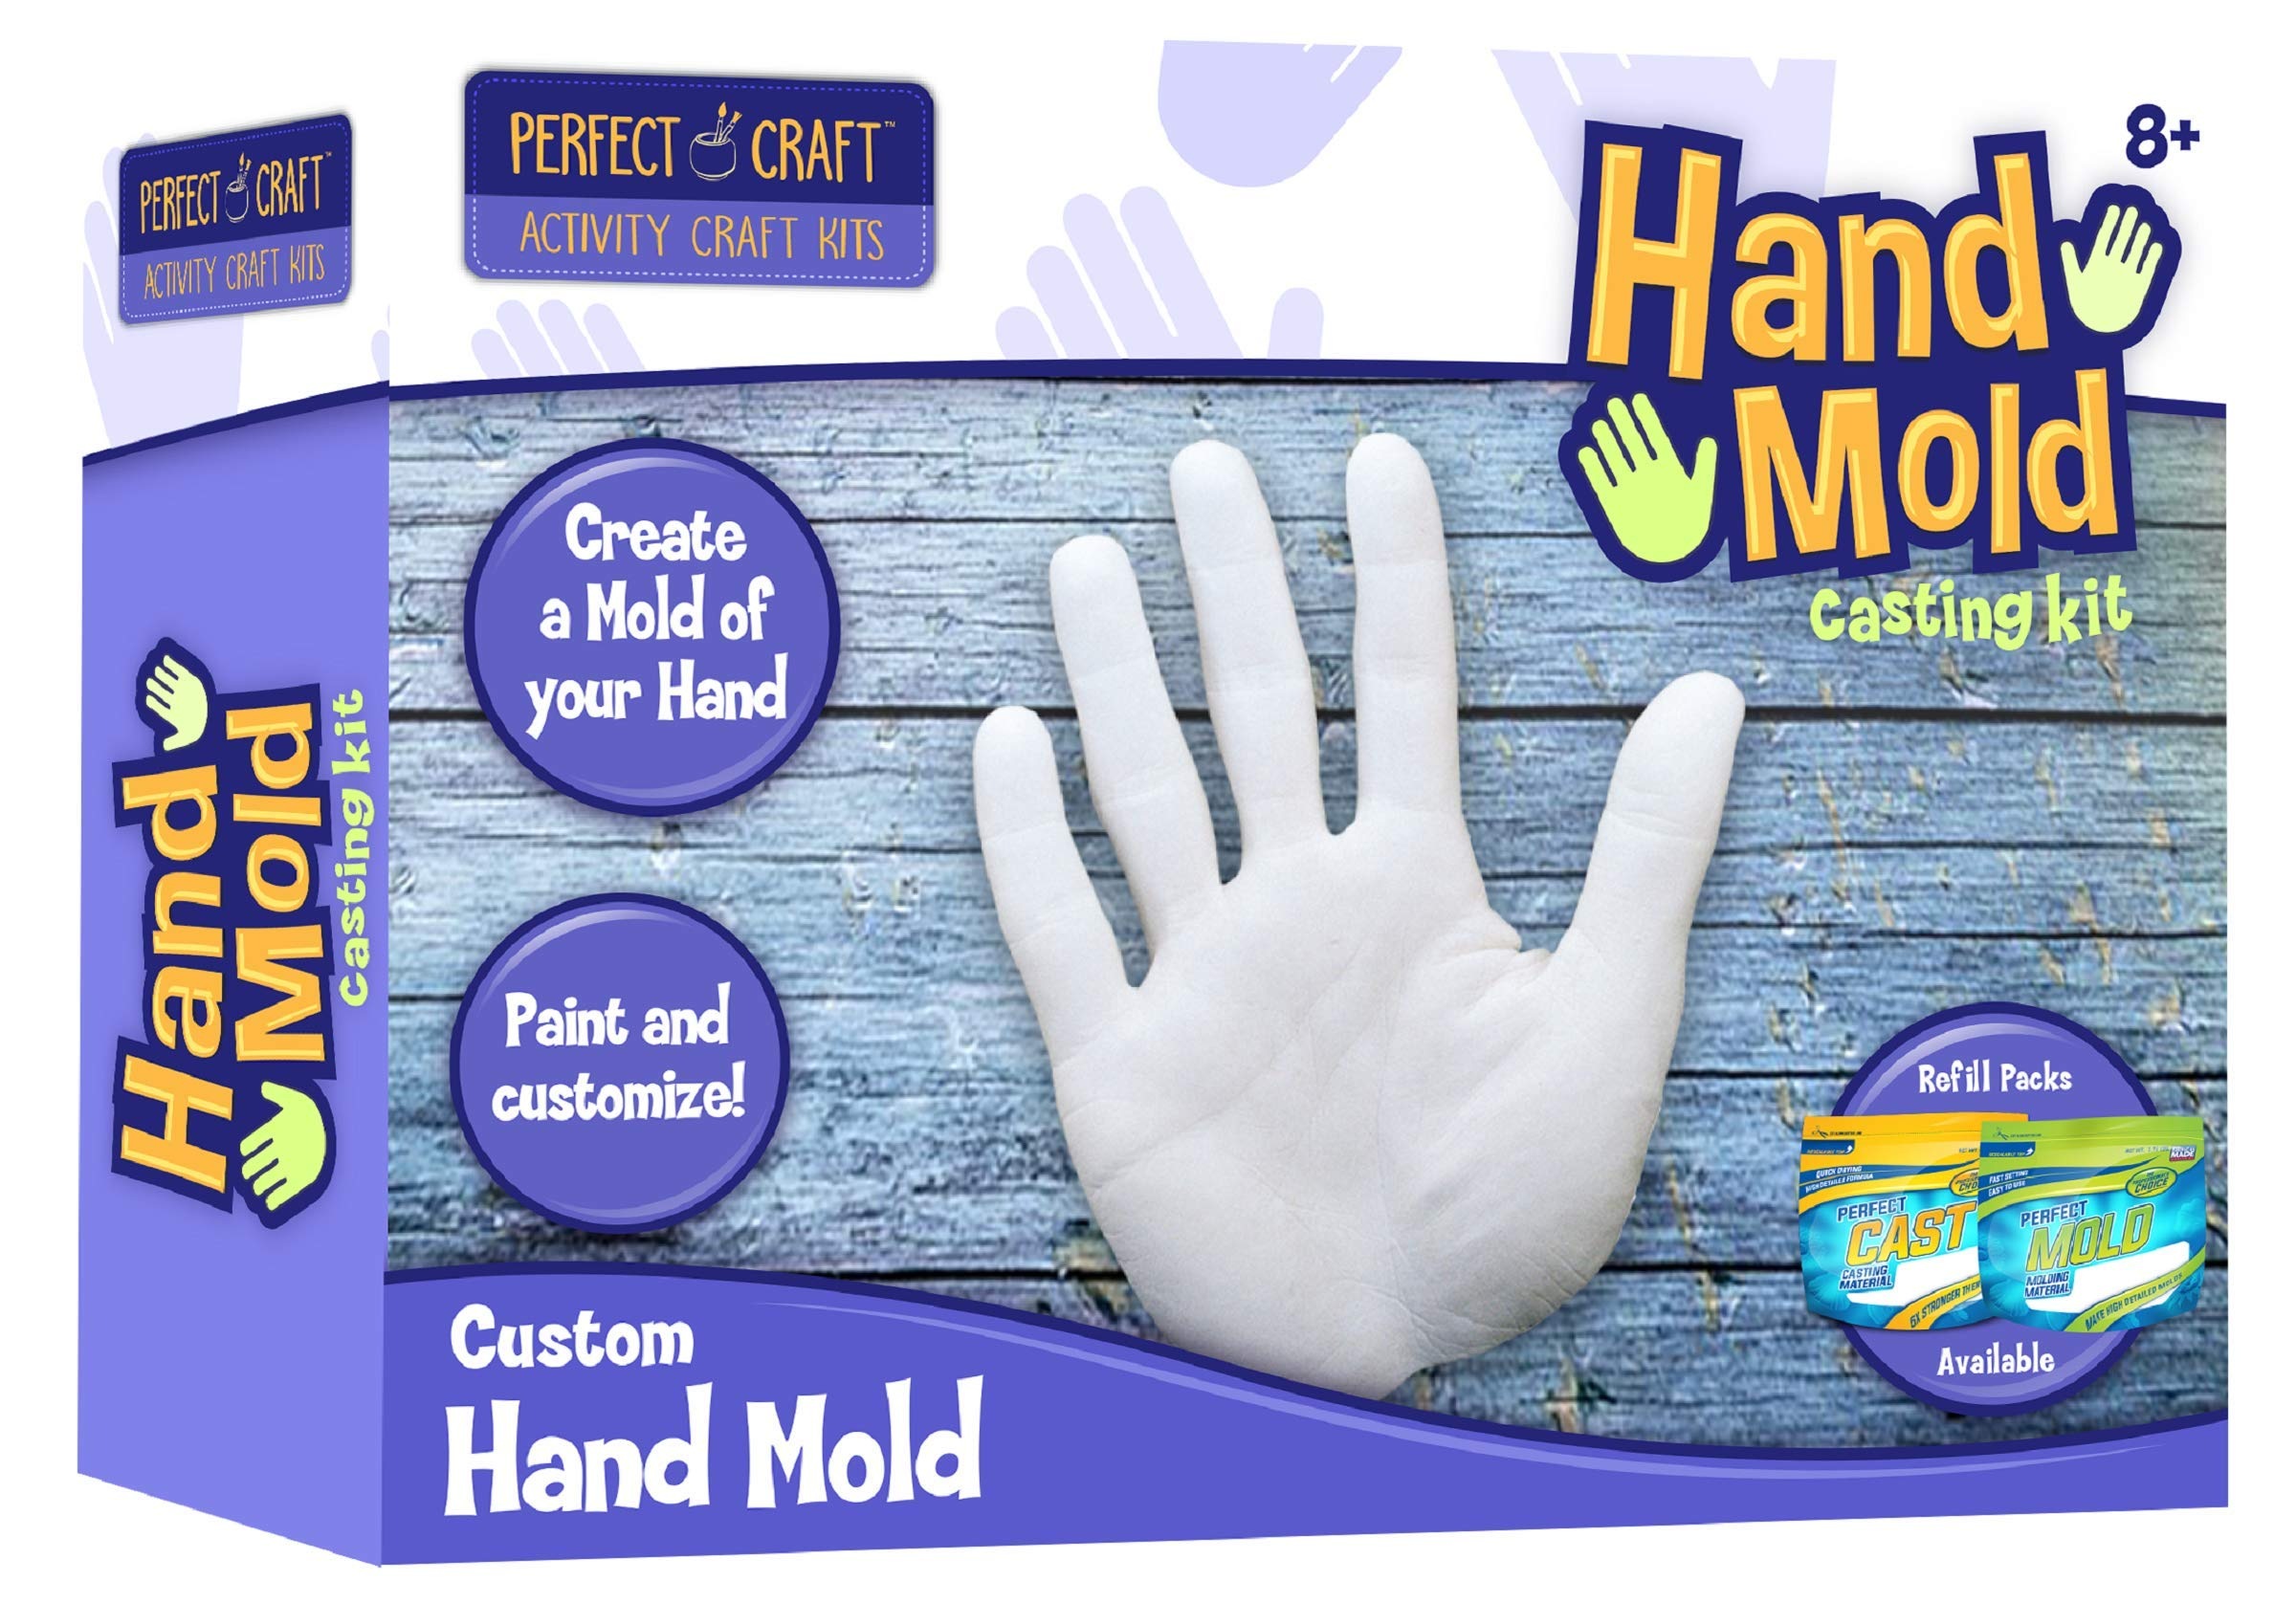 Perfect Craft Cast Paint Hand Mold Kit With Perfect Cast Casting Material Buy Online In Cayman Islands At Cayman Desertcart Com Productid 122166915